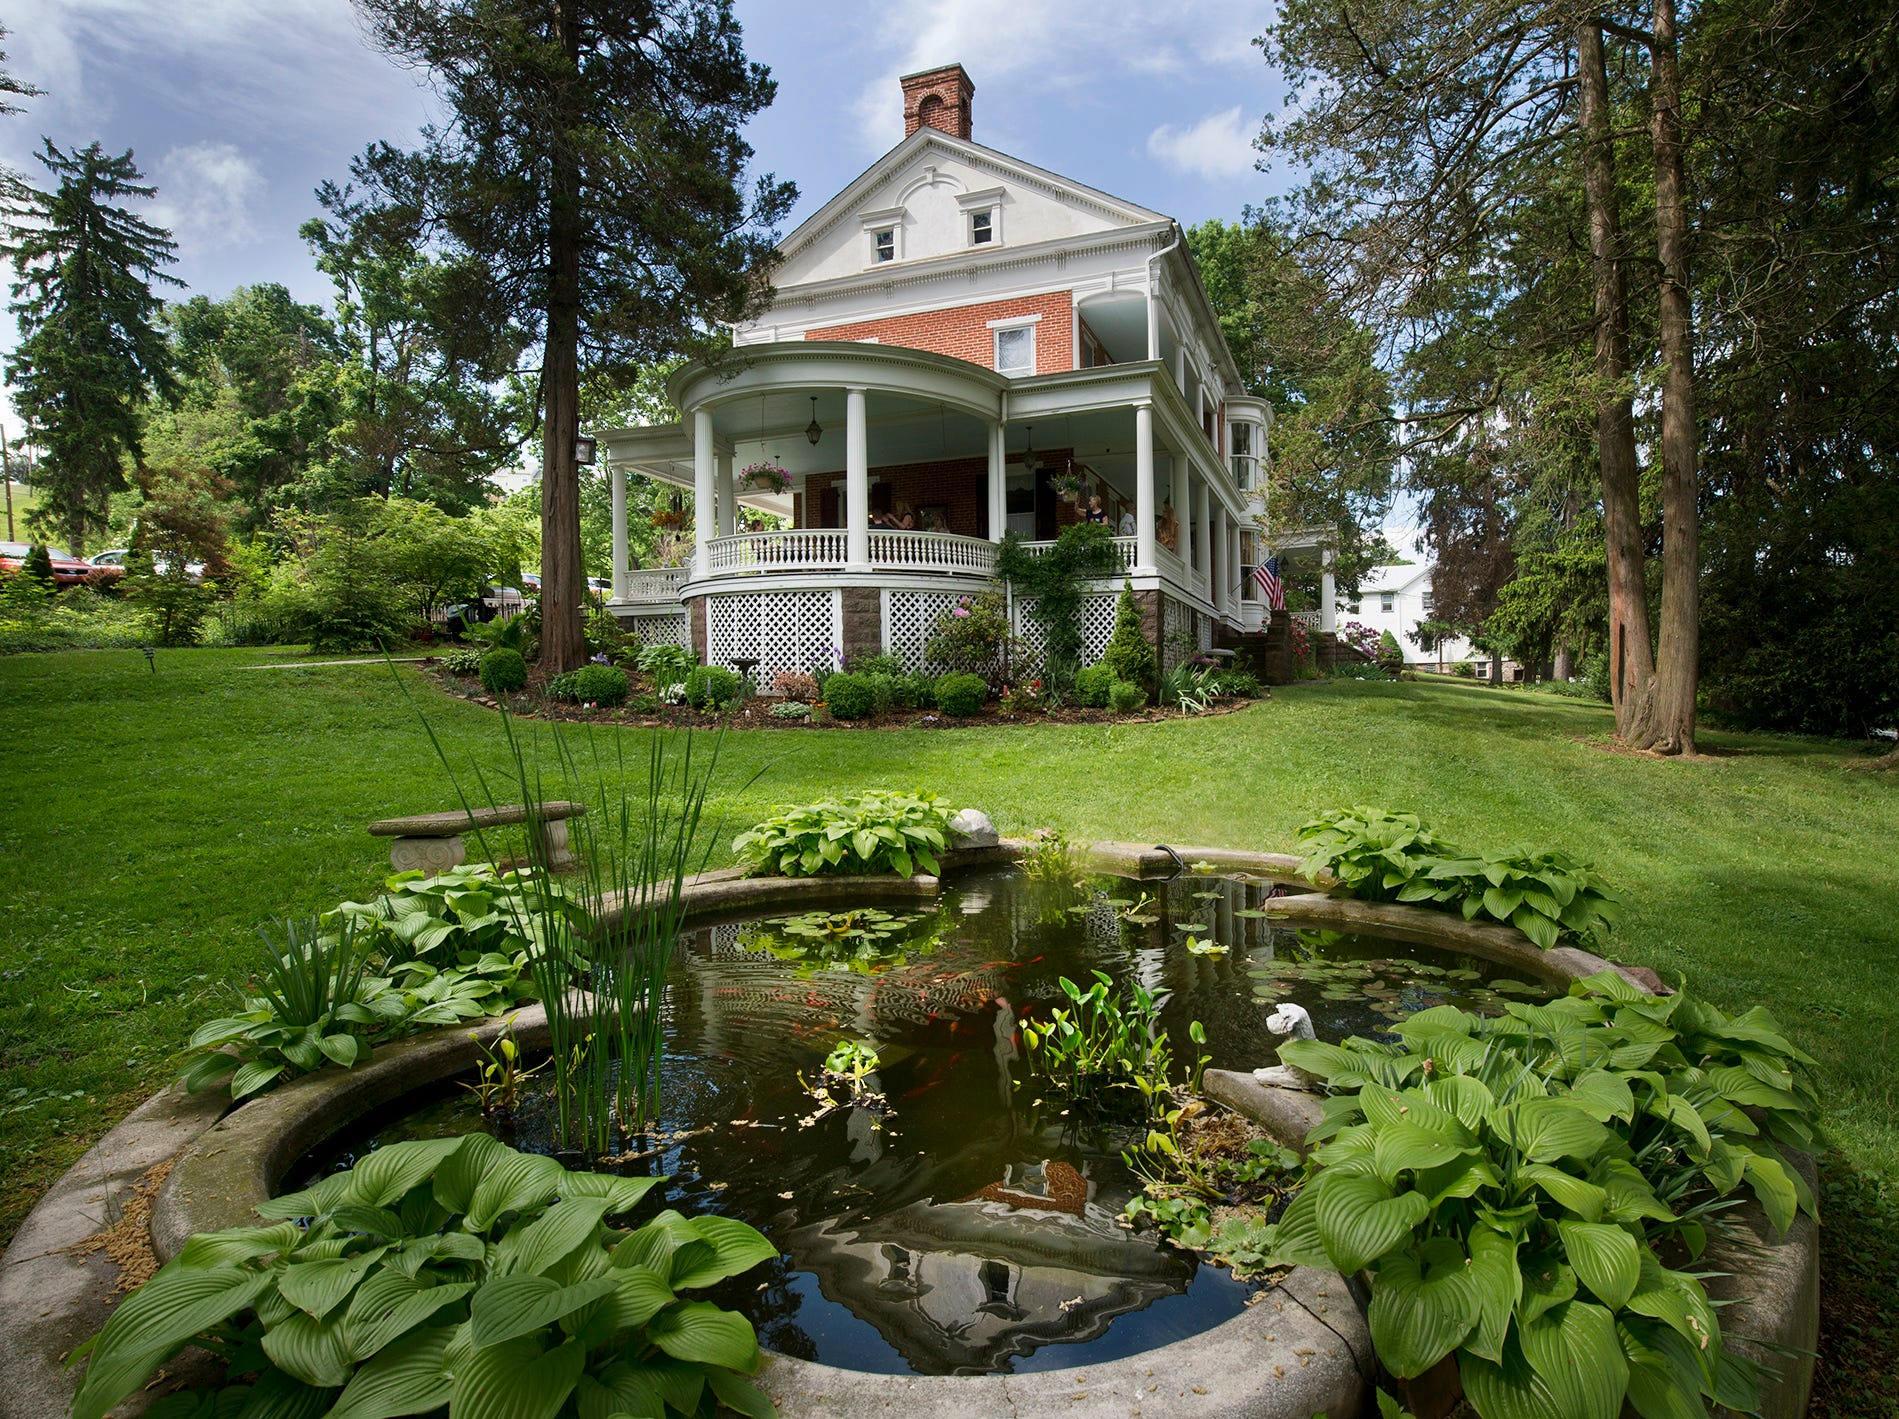 The fish pond frames the front lawn of The Emig Mansion Bed & Breakfast on Sunday May 17, 2015.